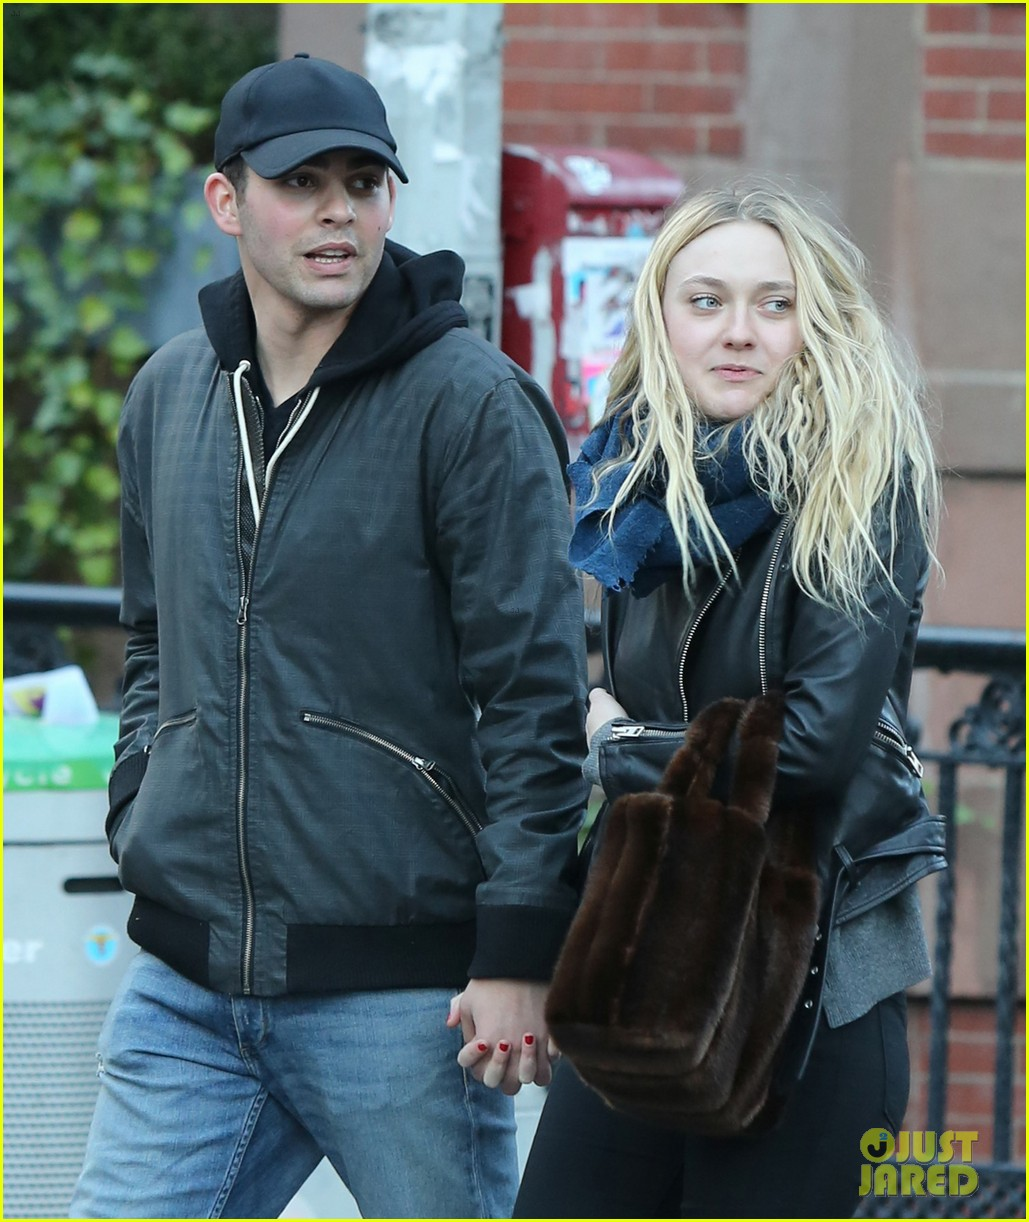 dakota fanning holds hands with mystery man in nyc2 053822151